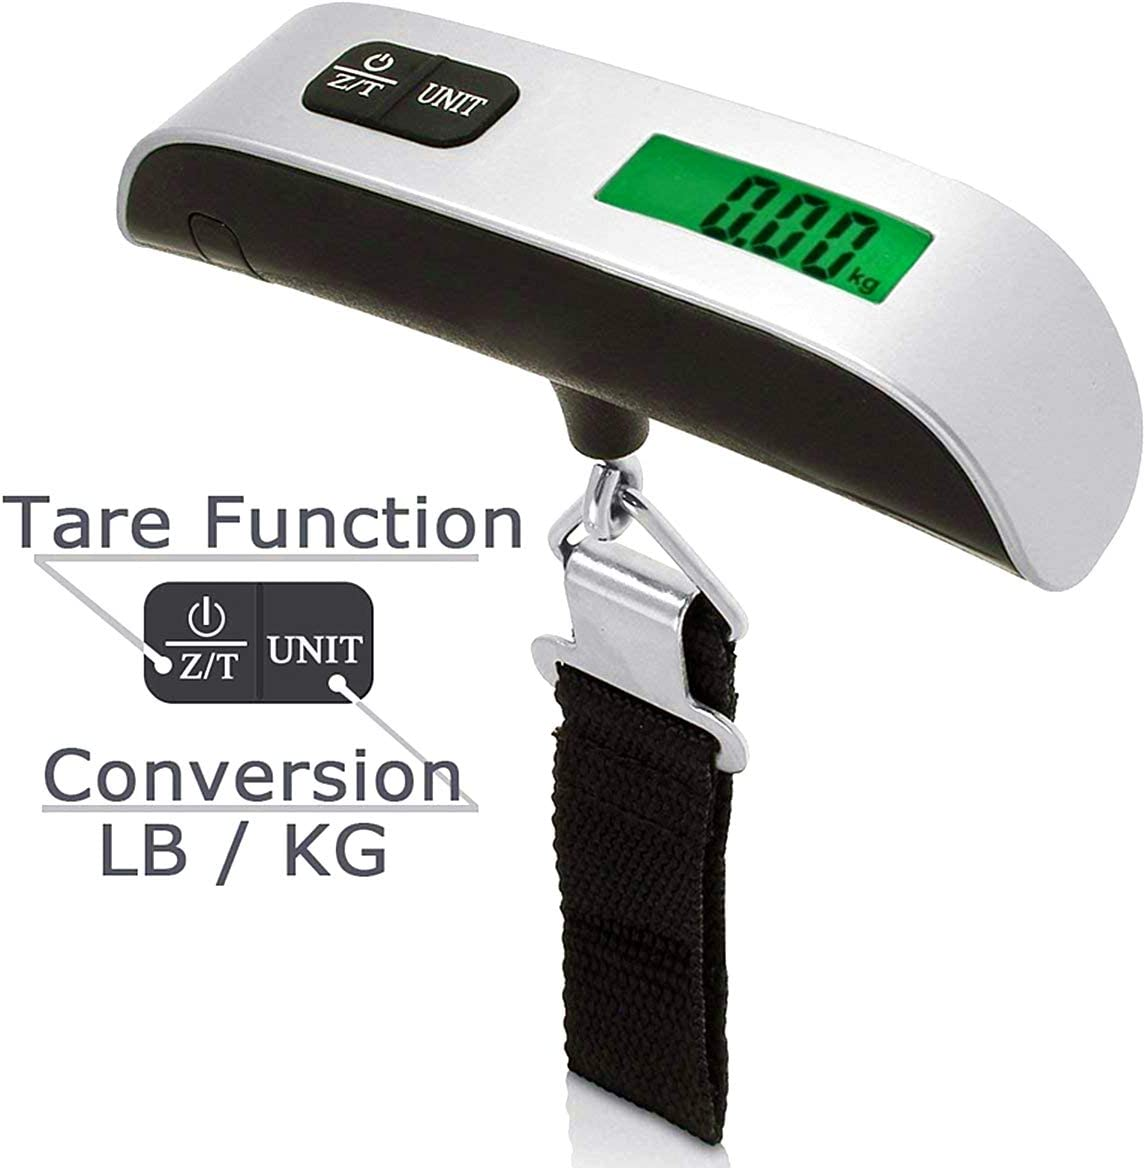 110 lb// 50KG Heavy Suspension Travel Luggage Scale with Backlit LCD Display with Tare Function Portable Digital Scale Silver illumafye Digital Luggage Scale